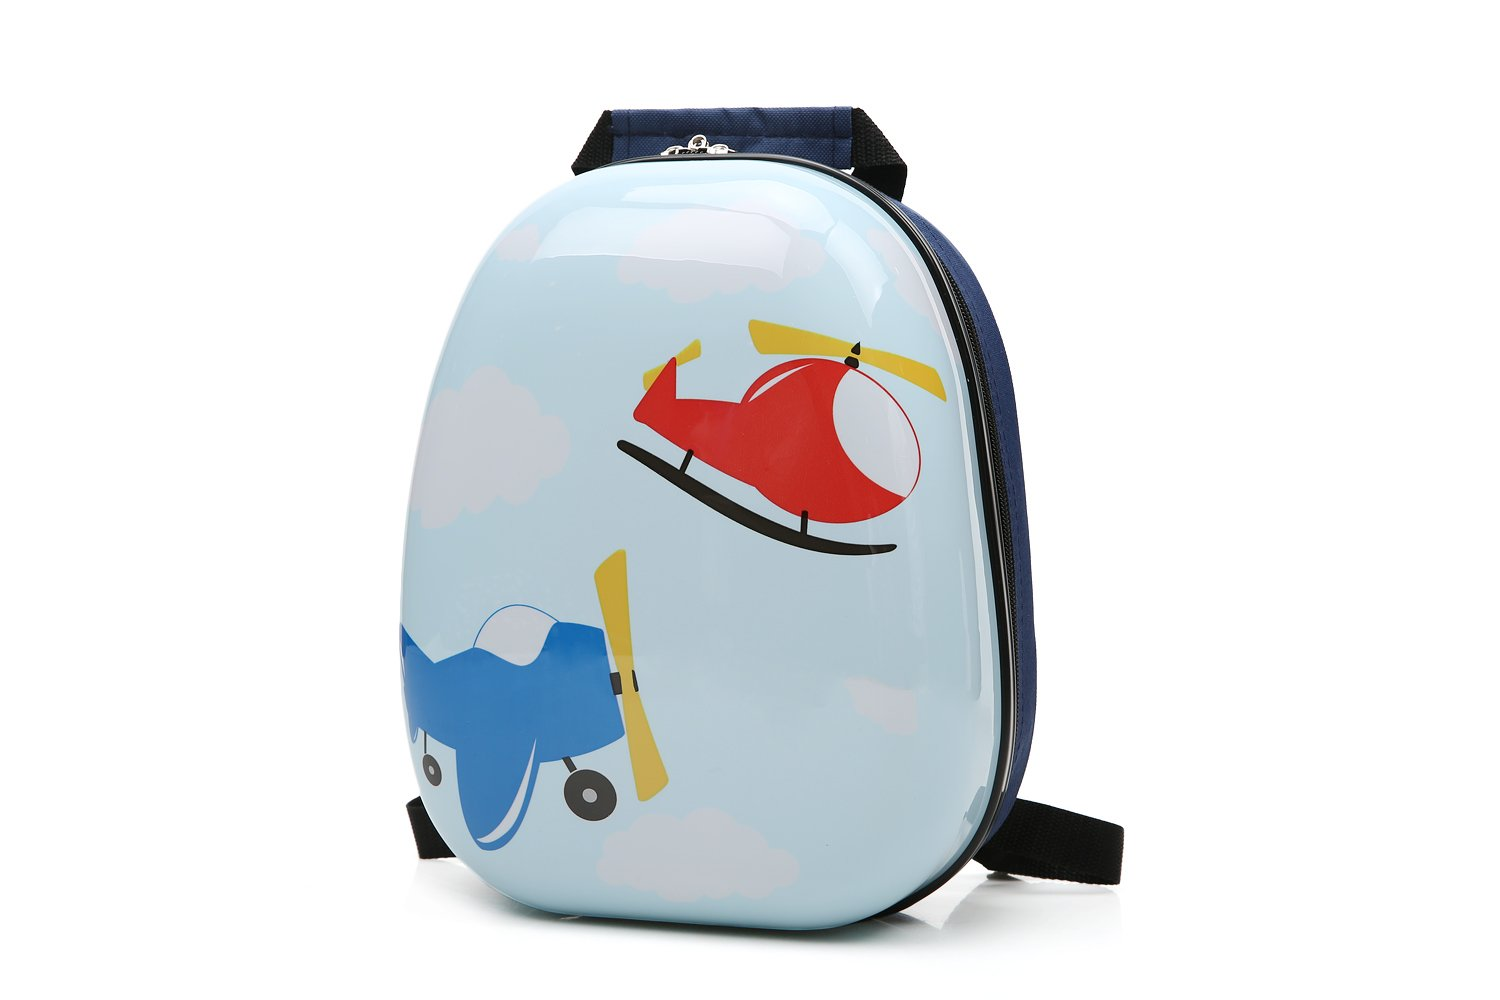 MOREFUN Travel Suitcase Kids 2 Pc Wheels Luggage Set 18'' Carry on Luggage and 13'' Backpack Car by Morefun Trading (Image #4)